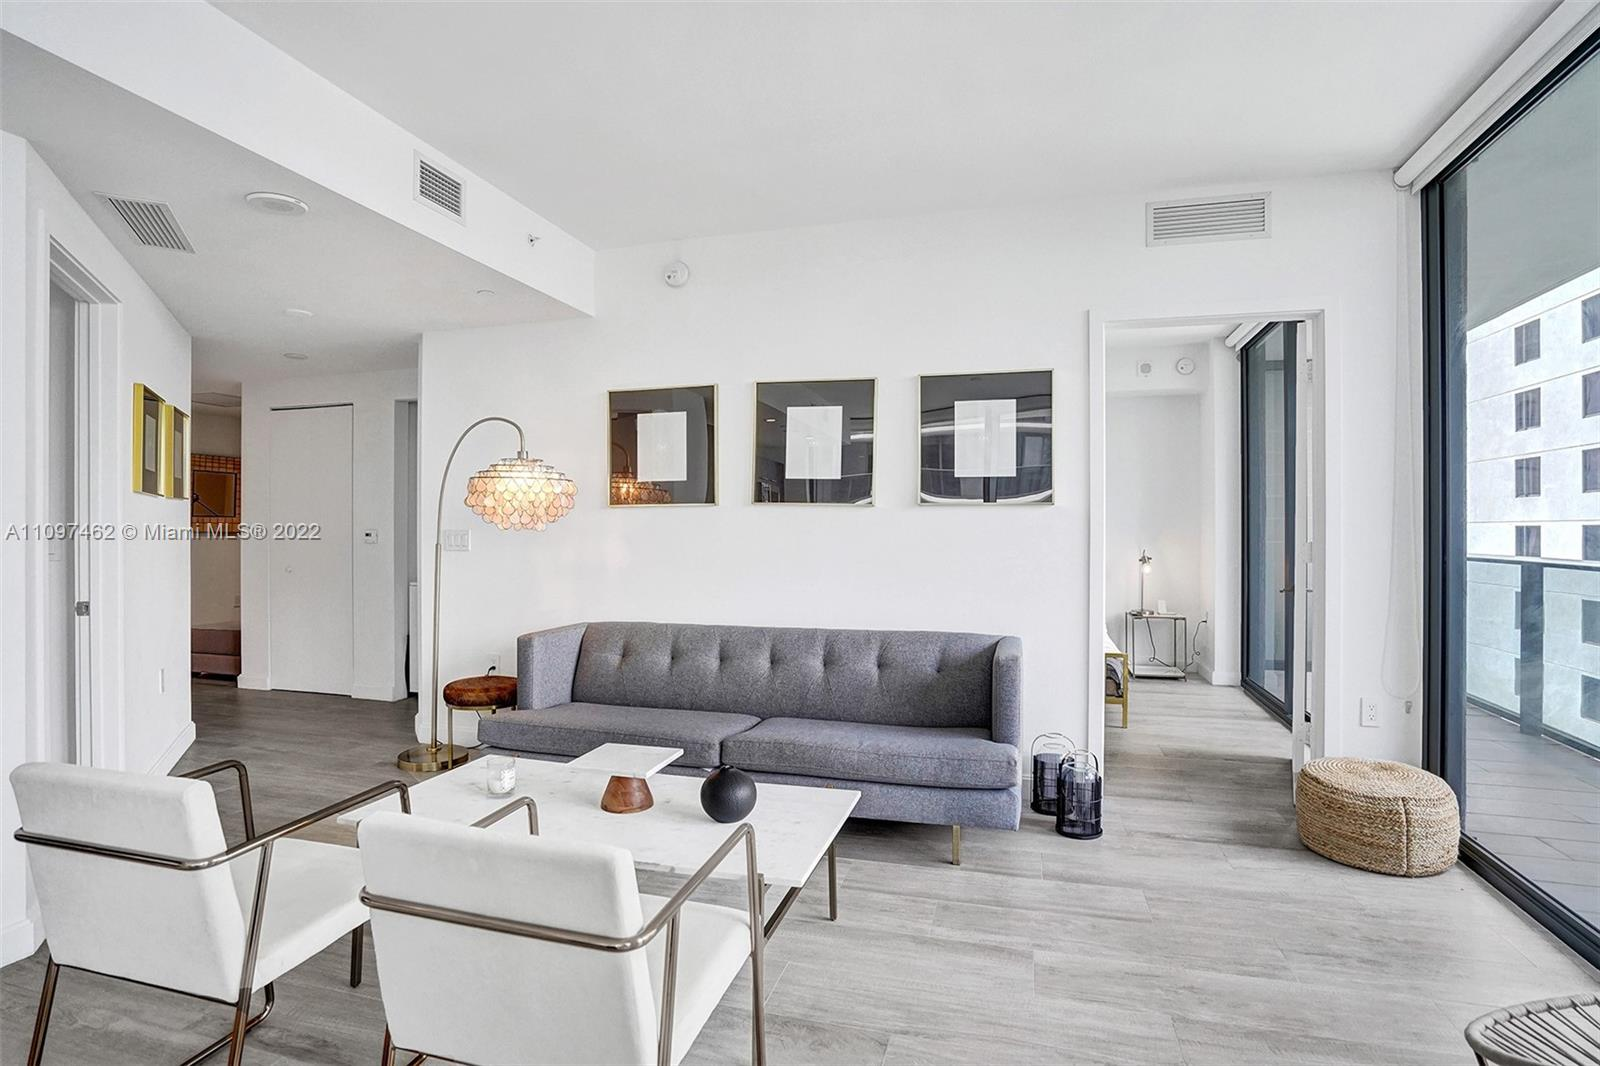 BRICKELL HEIGHTS WEST CON Condo,For Sale,BRICKELL HEIGHTS WEST CON Brickell,realty,broker,condos near me